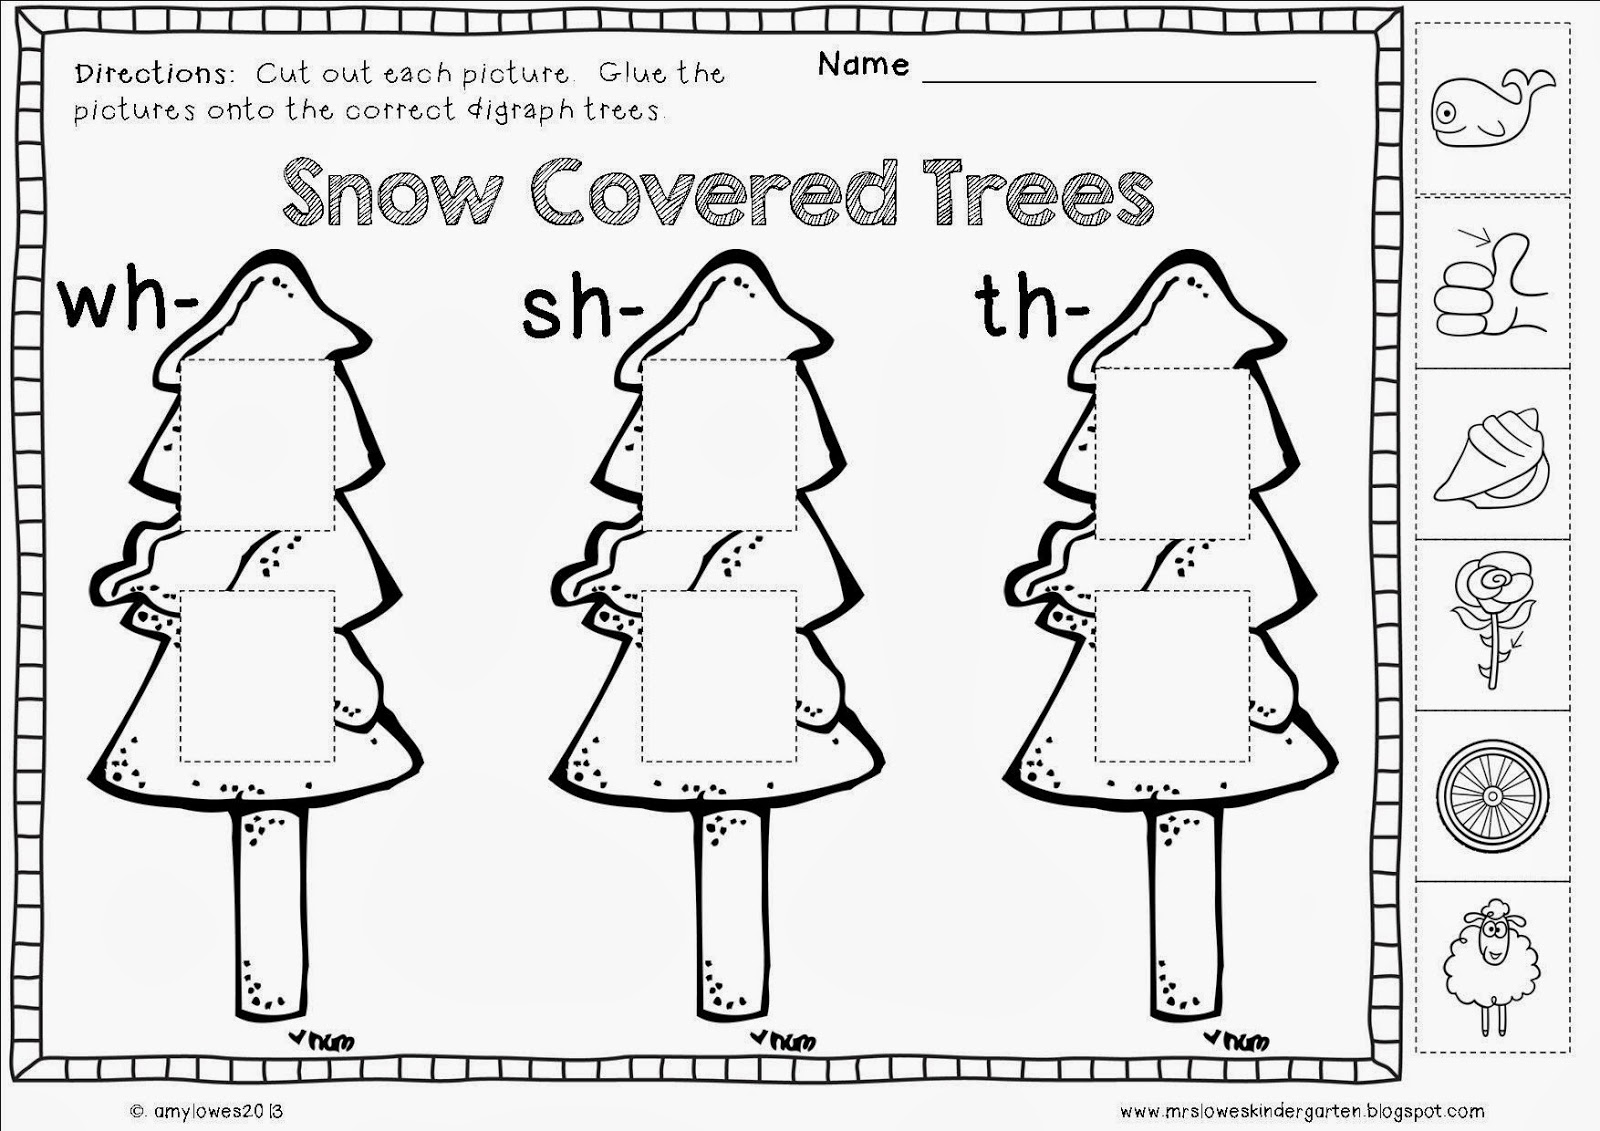 Mrs Lowes Kindergarten Korner No Prep Winter Math And Literacy Printables Giveaway